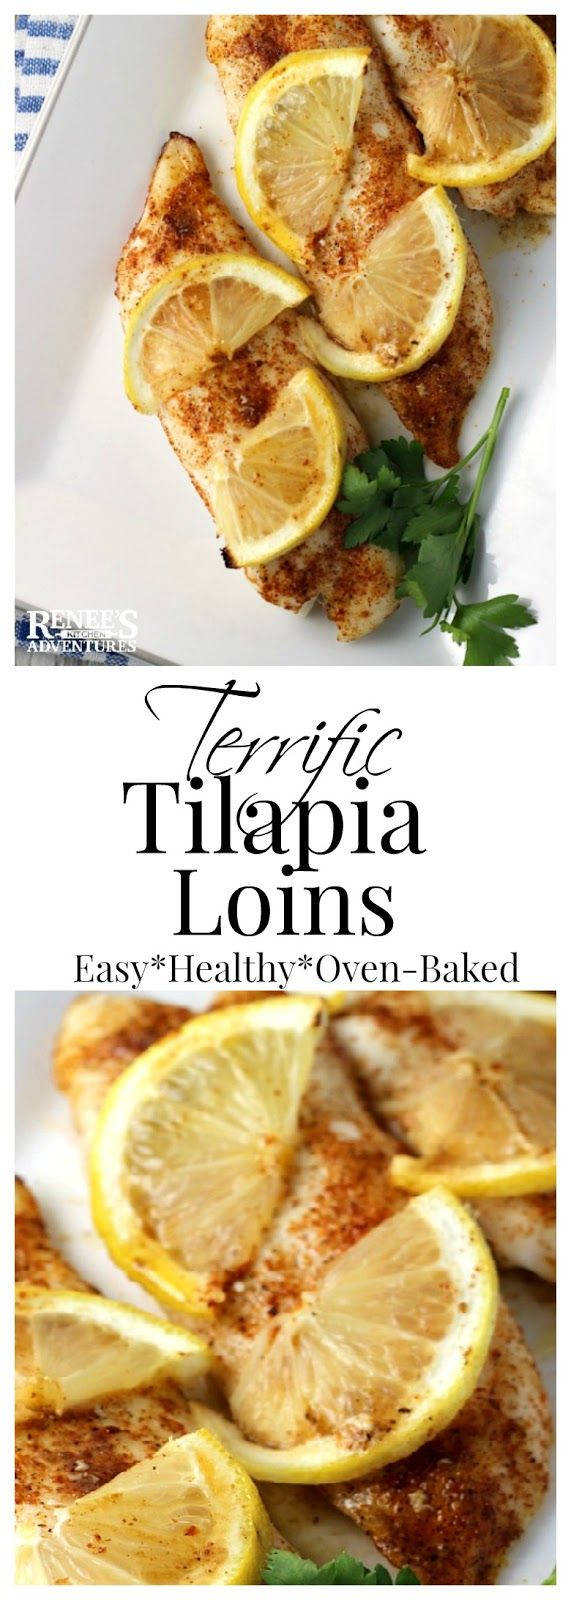 Terrific Tilapia Loins | Renee's Kitchen Adventures - easy baked recipe for tilapia fish with lemon butter and creole seasonings that's cooked from frozen. Dinner ready in about 30 minutes!